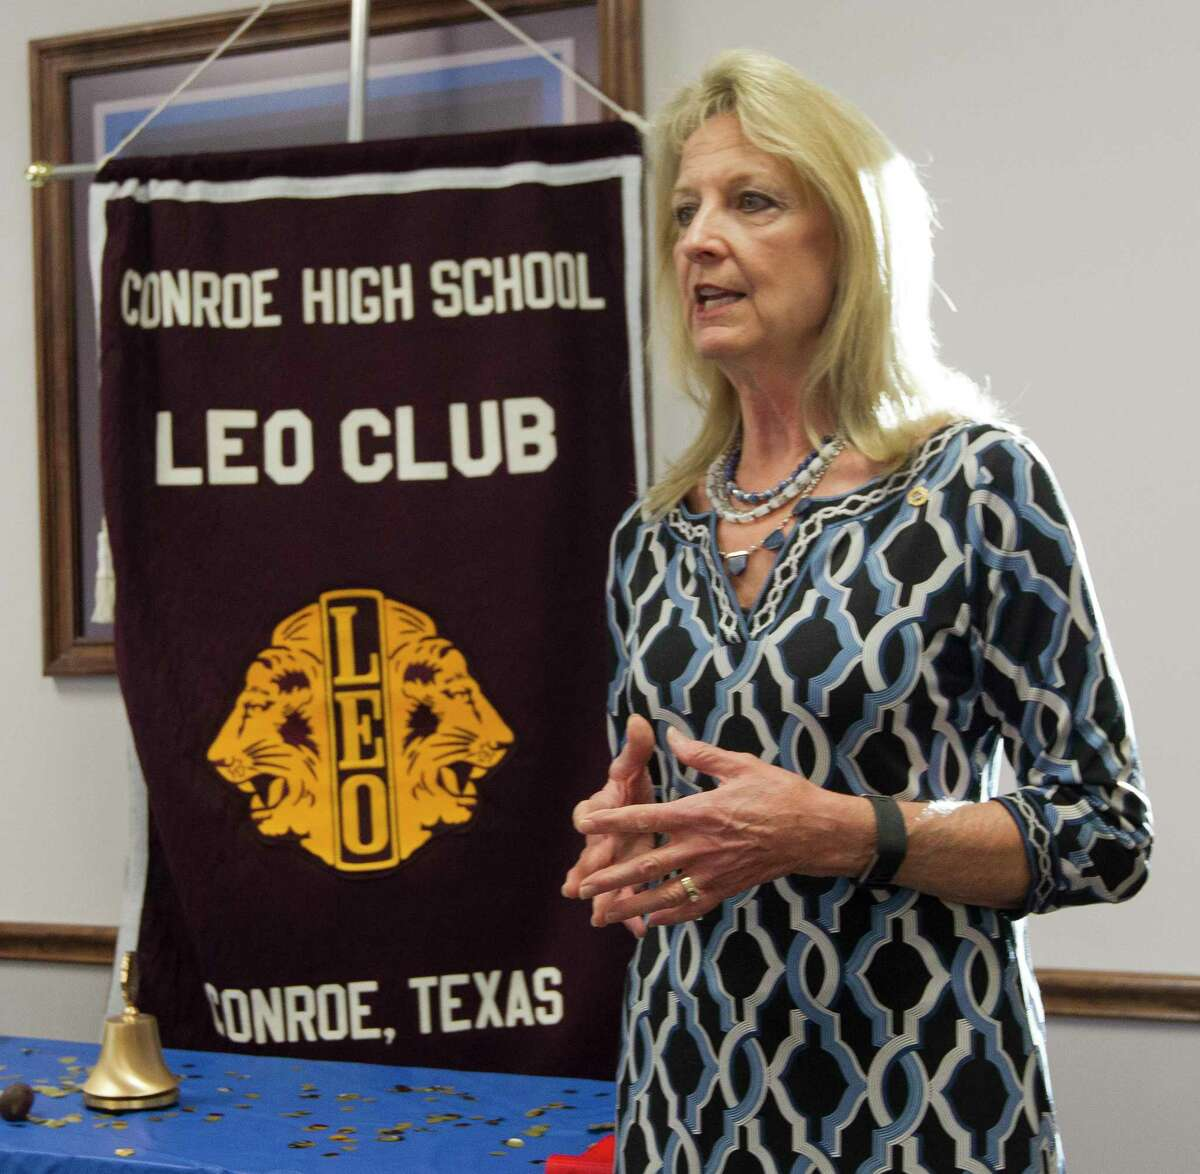 Helen Thornton, president of the Conroe Noon Lions Club, speaks during a meeting of the Conroe High School LEO Club, Wednesday, Jan. 24, 2018, in Conroe. Members of the Conroe Noon Lions Club were on hand to help guide the new high school club.